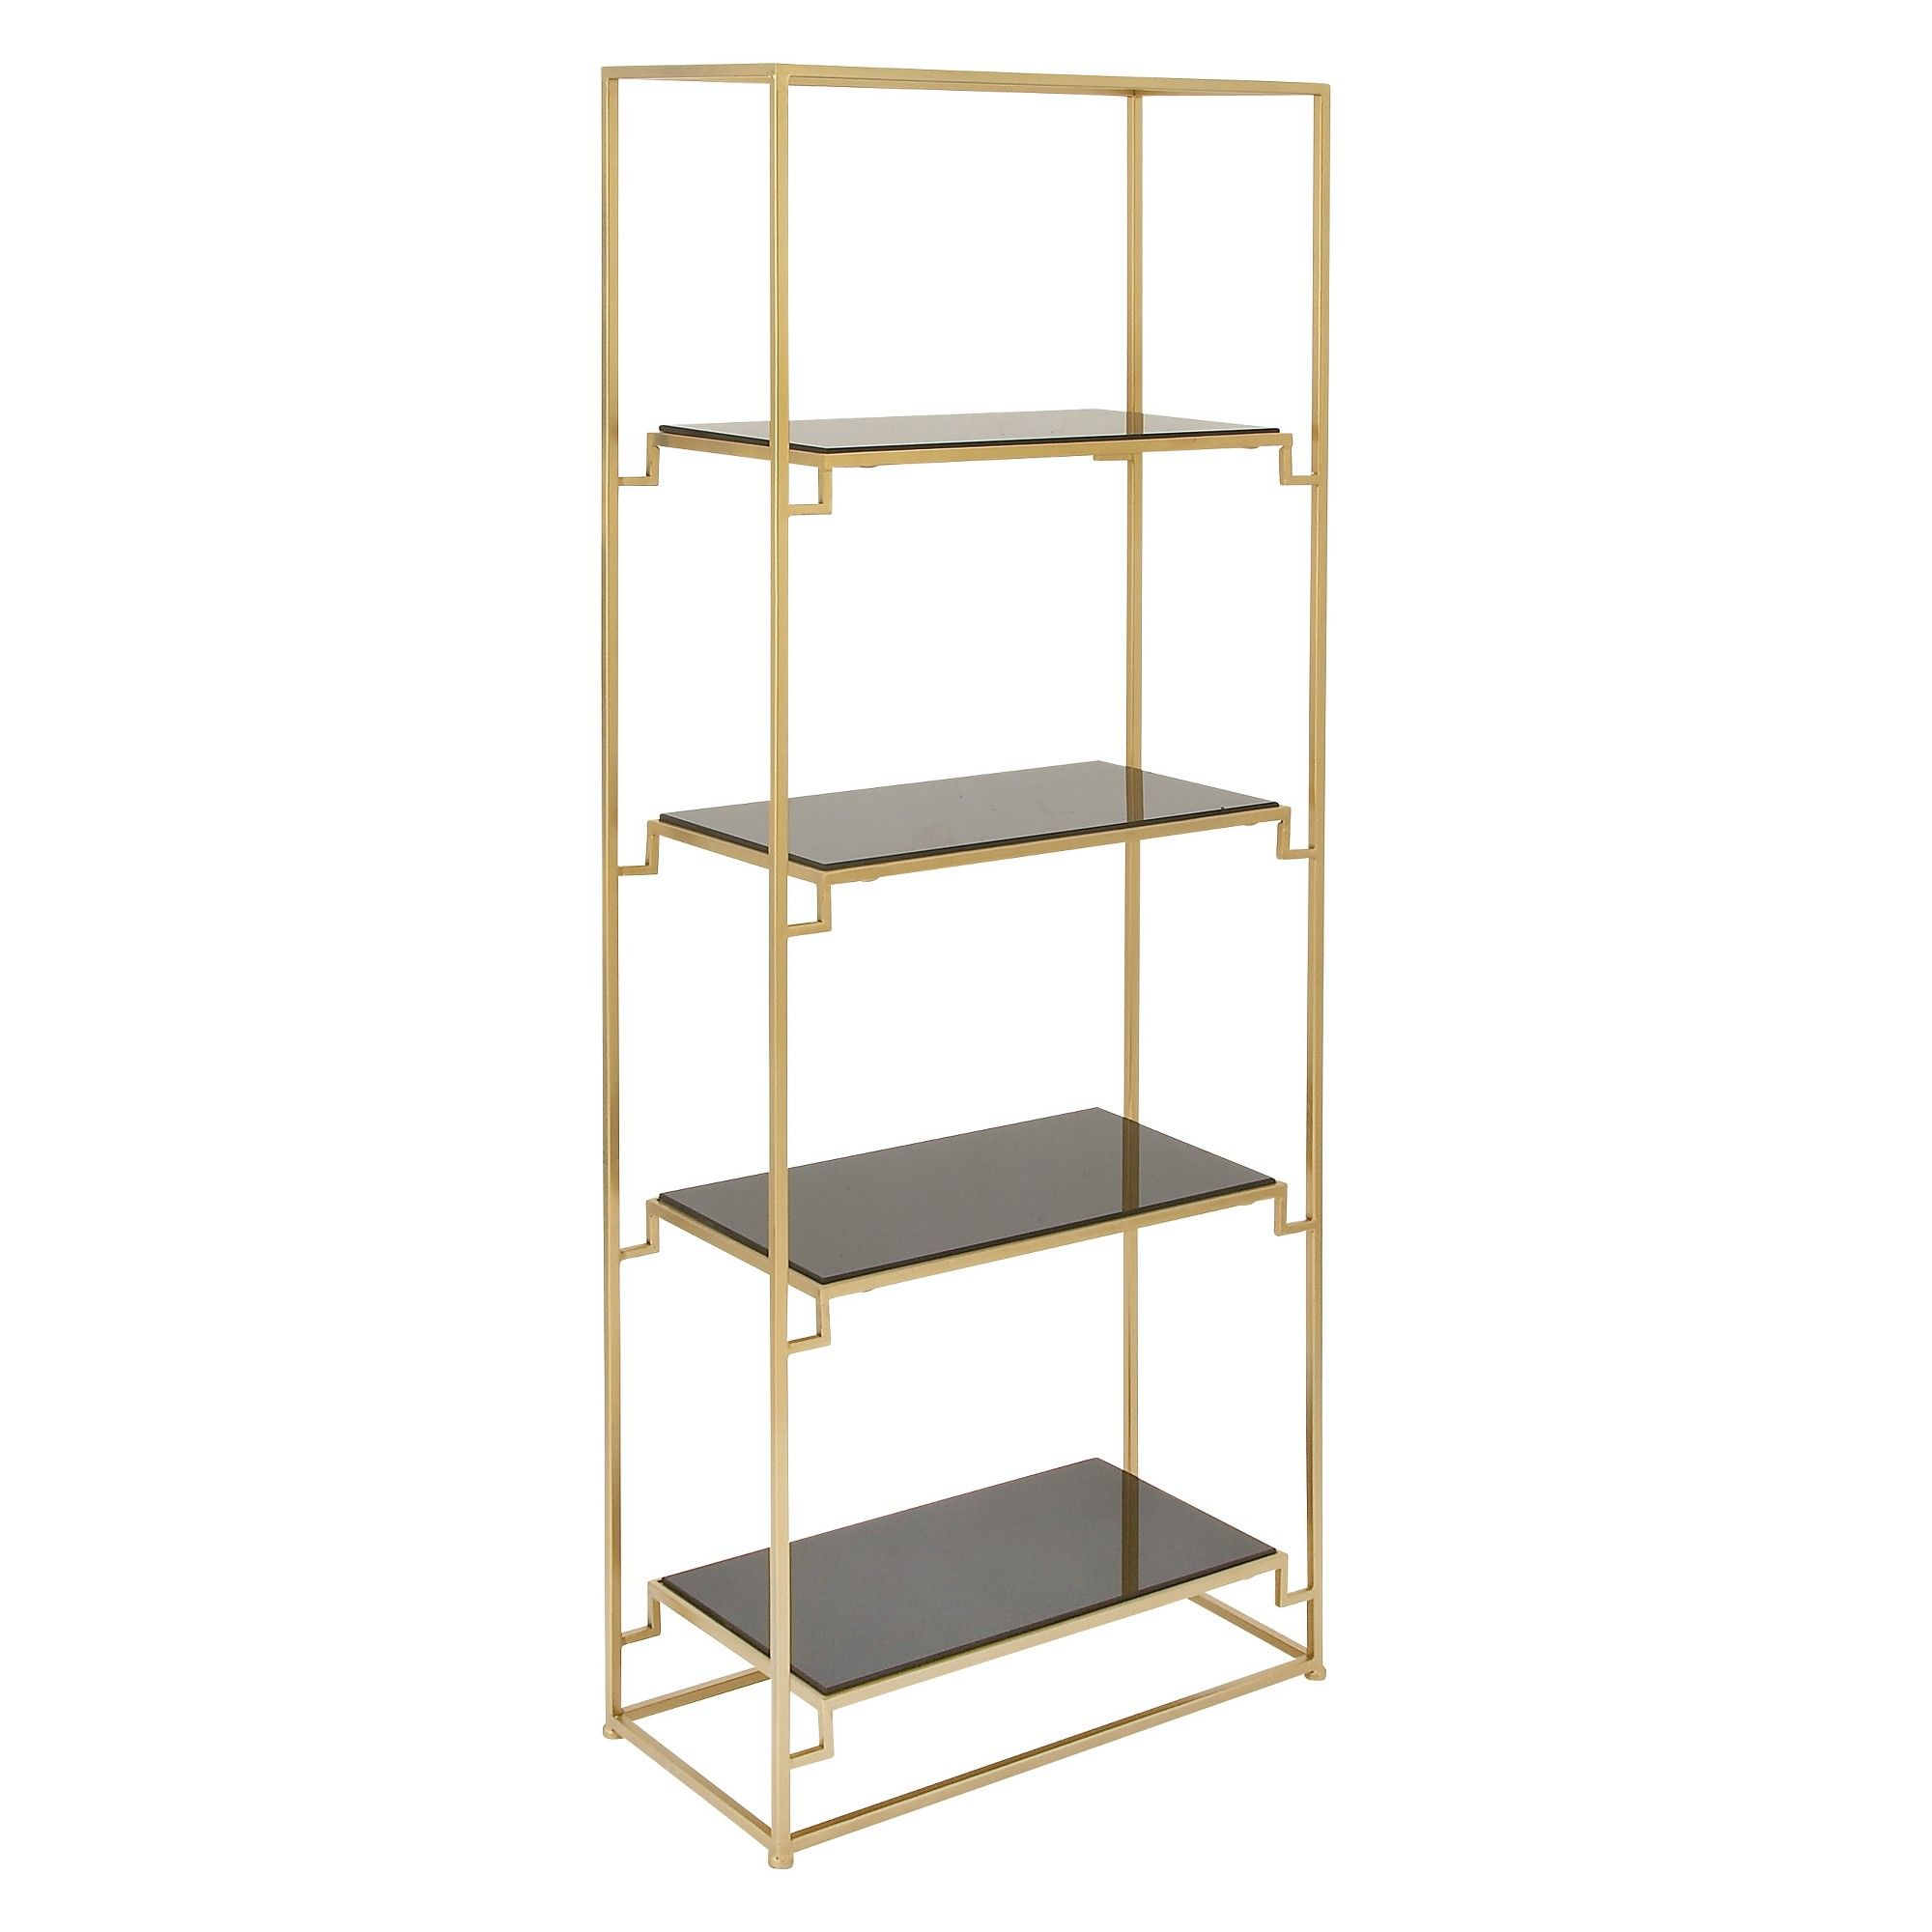 63 Metal And Glass 4 Tiered Book Shelf Gold Olivia May Etagere Bookcase Bookcase Glass Shelves In Bathroom